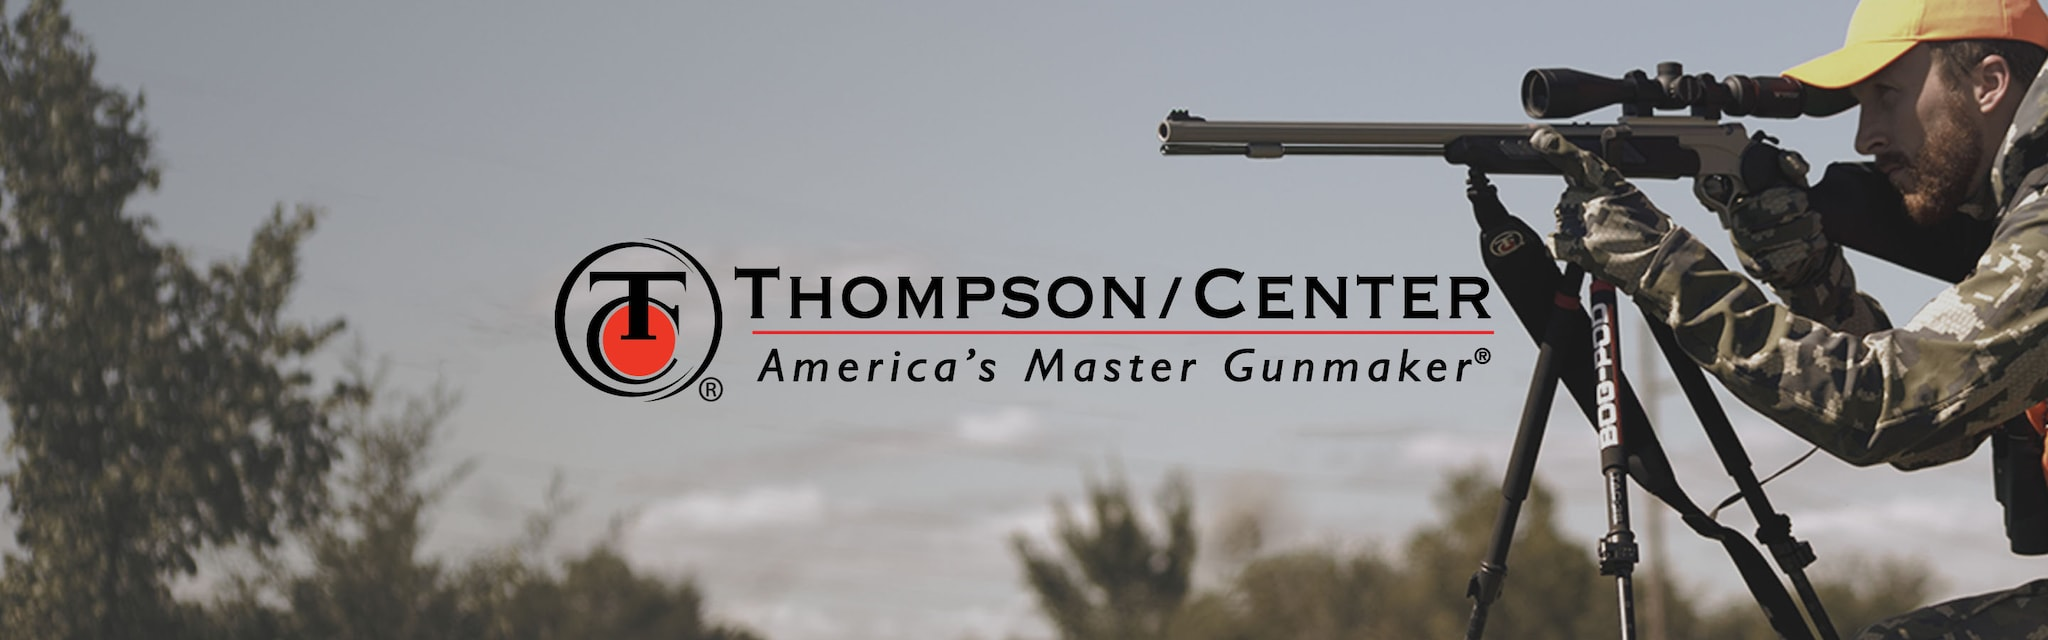 thompson/center arms banner